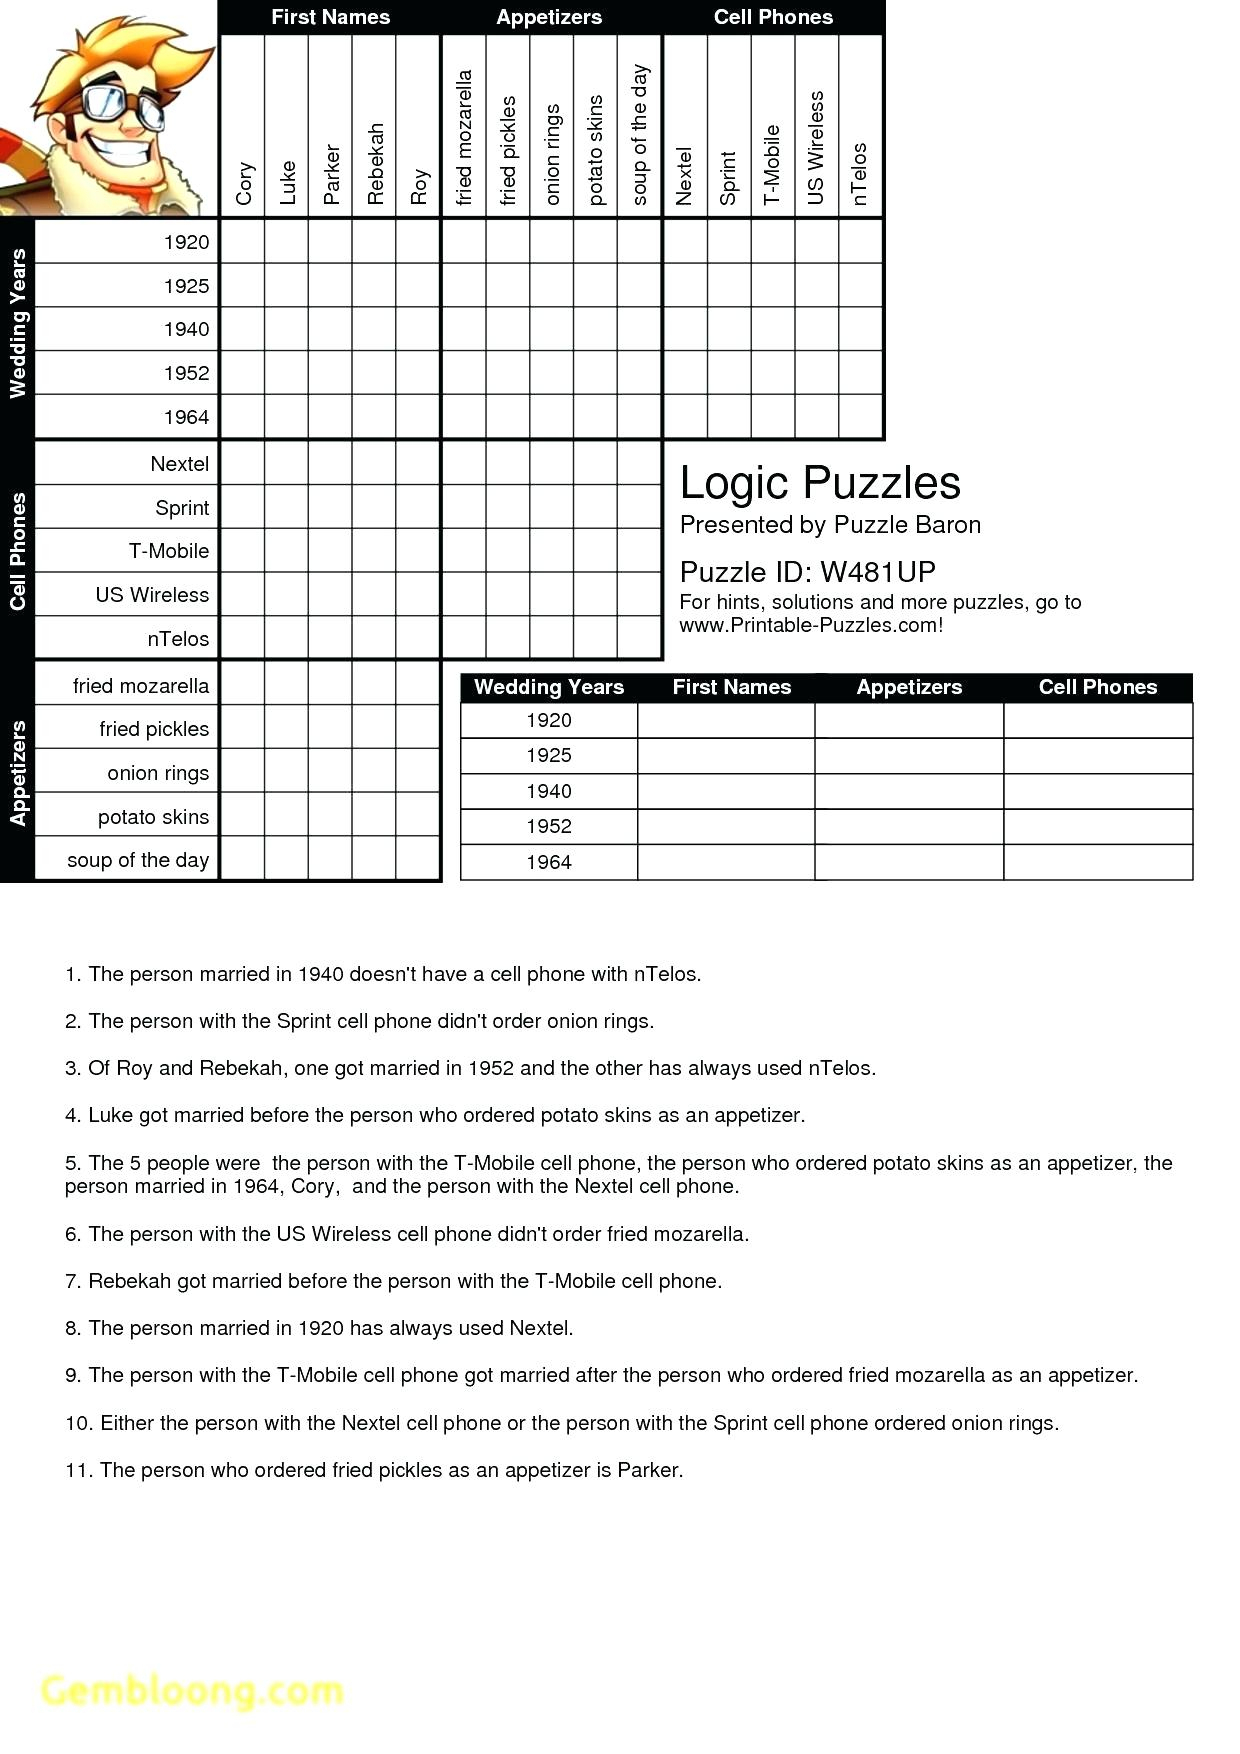 photograph about Easy Logic Puzzles Printable known as Printable Logic Puzzle Dingbat Rebus Puzzles Dingbats S